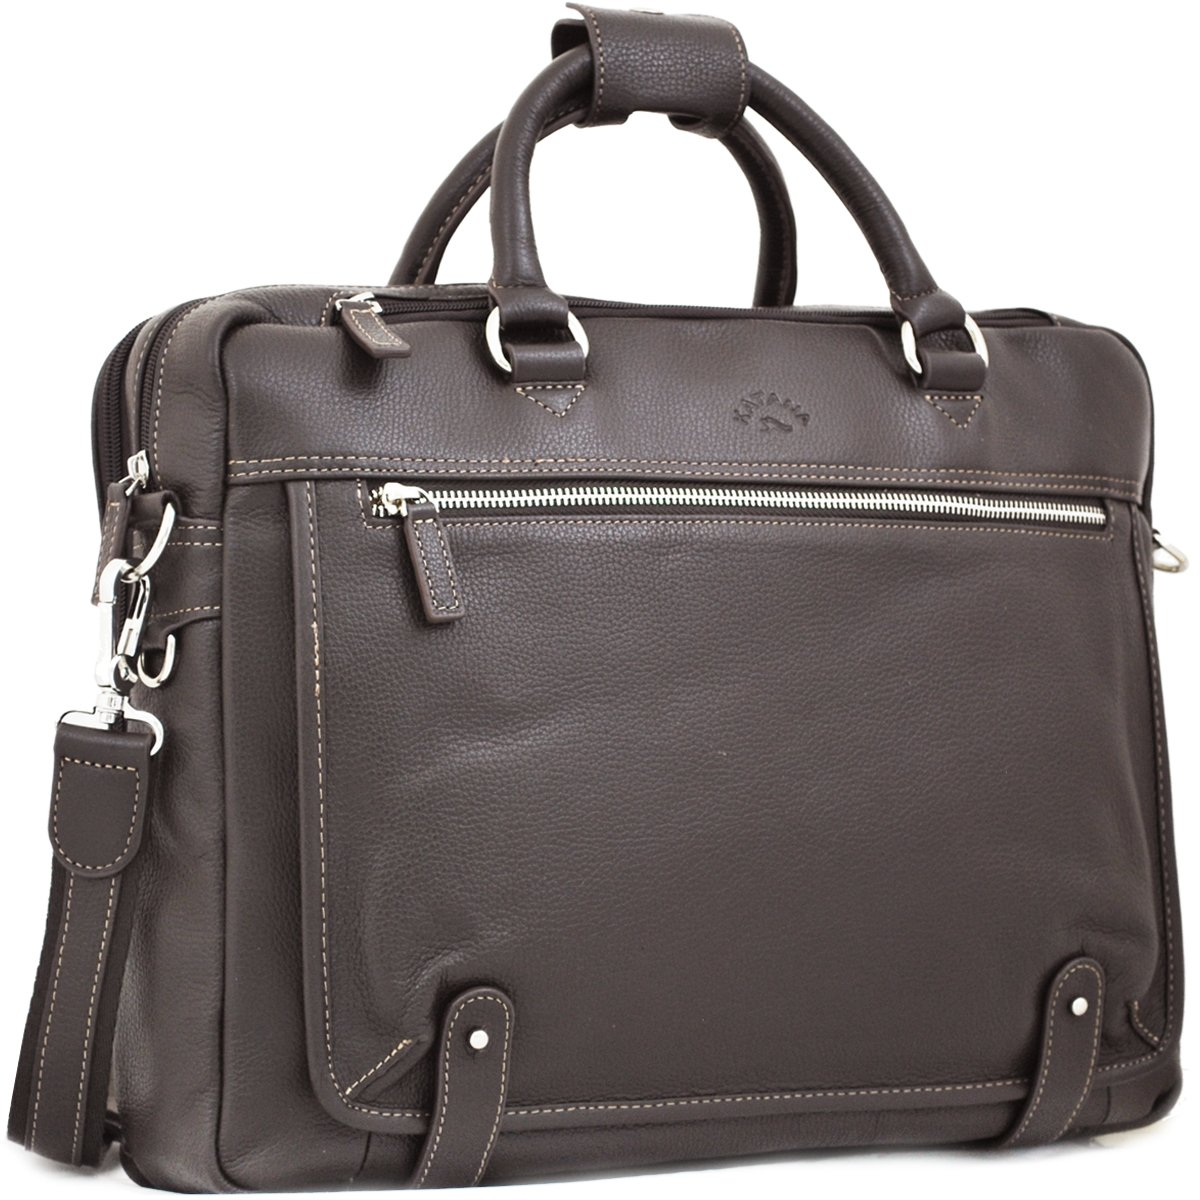 "Cartable Cuir Porte-ordinateur 15"" KATANA - Marron"